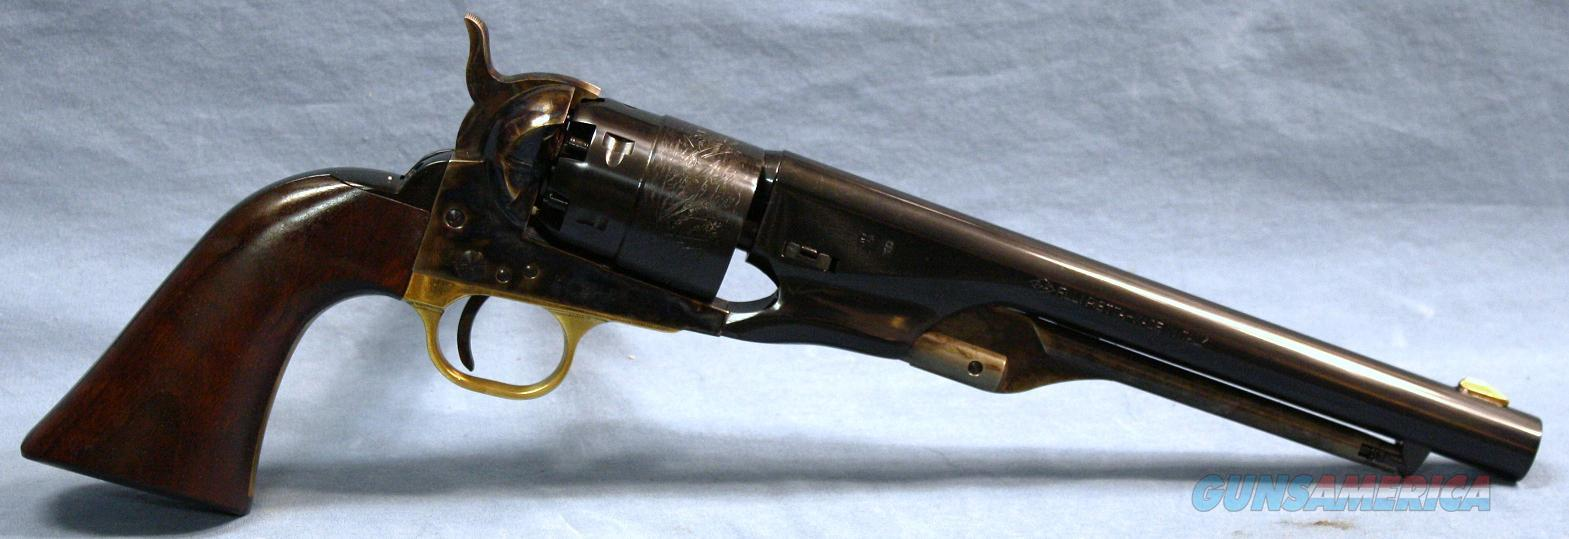 traditions model 1860 army single action percus for sale